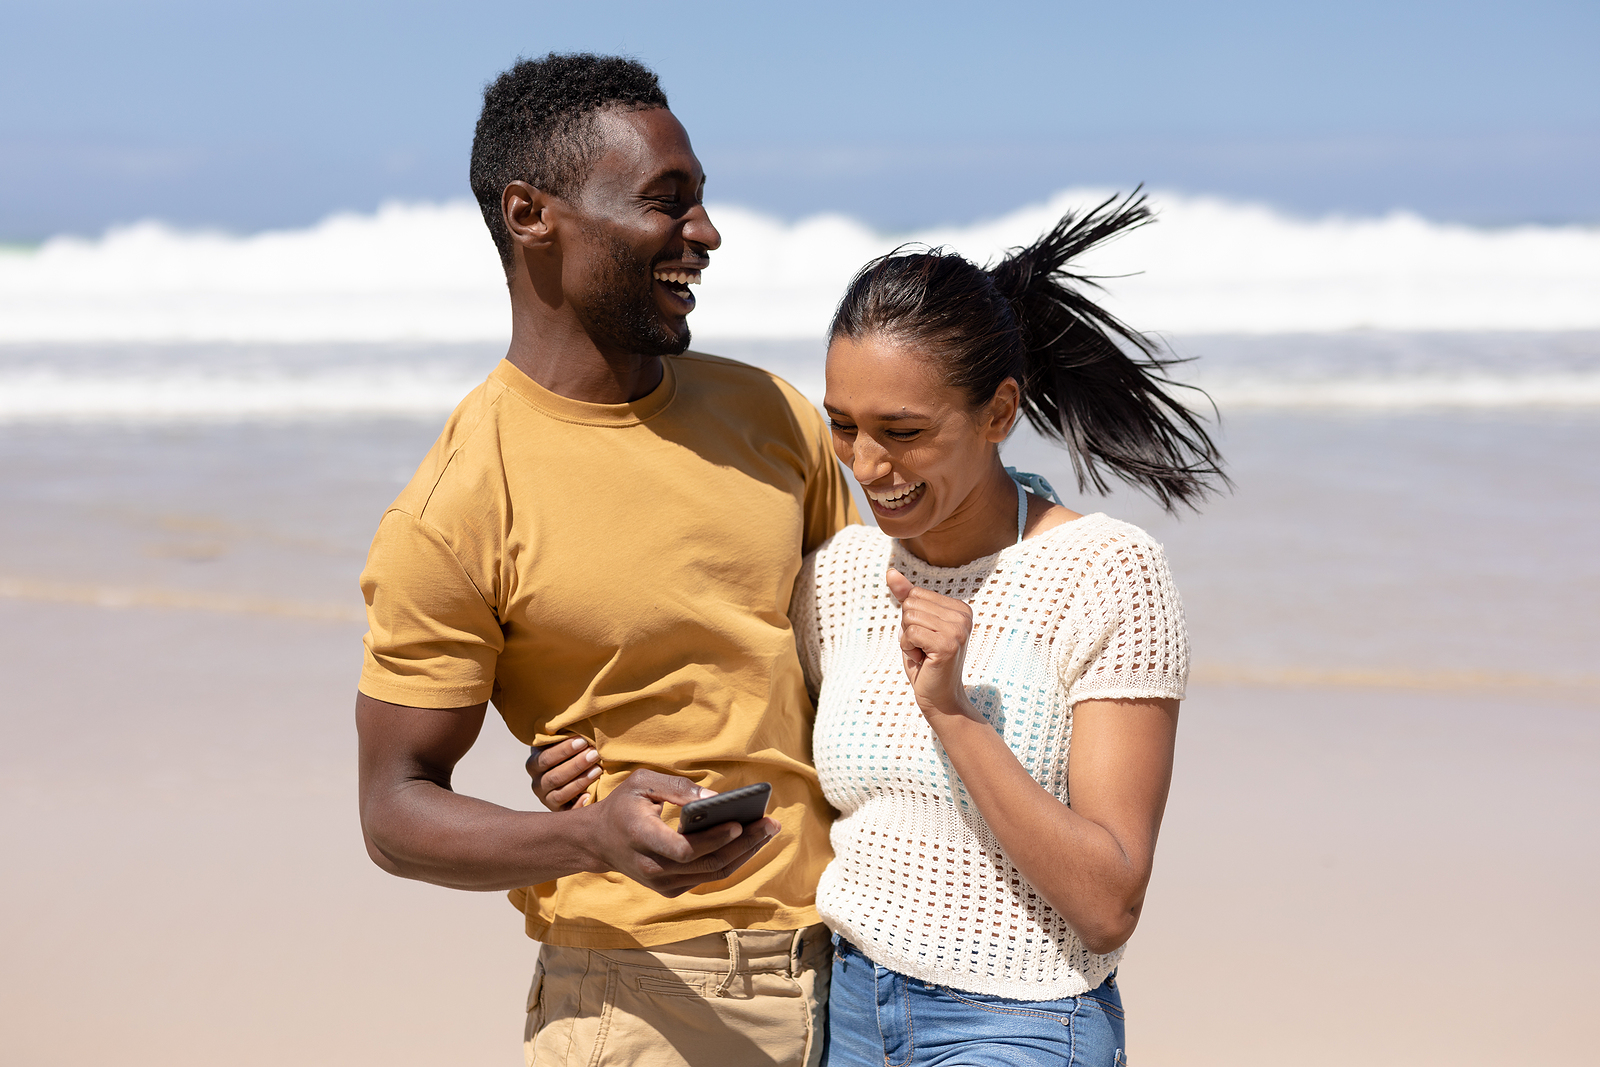 Happy interracial couple holding each other and smiling at the beach. Our therapists are here to guide you toward better mental heath. Get the support you have been seeking in online therapy in Michigan today. We provide therapy for anxiety, trauma, perfectionism, couples, working professionals, and more. Call now!